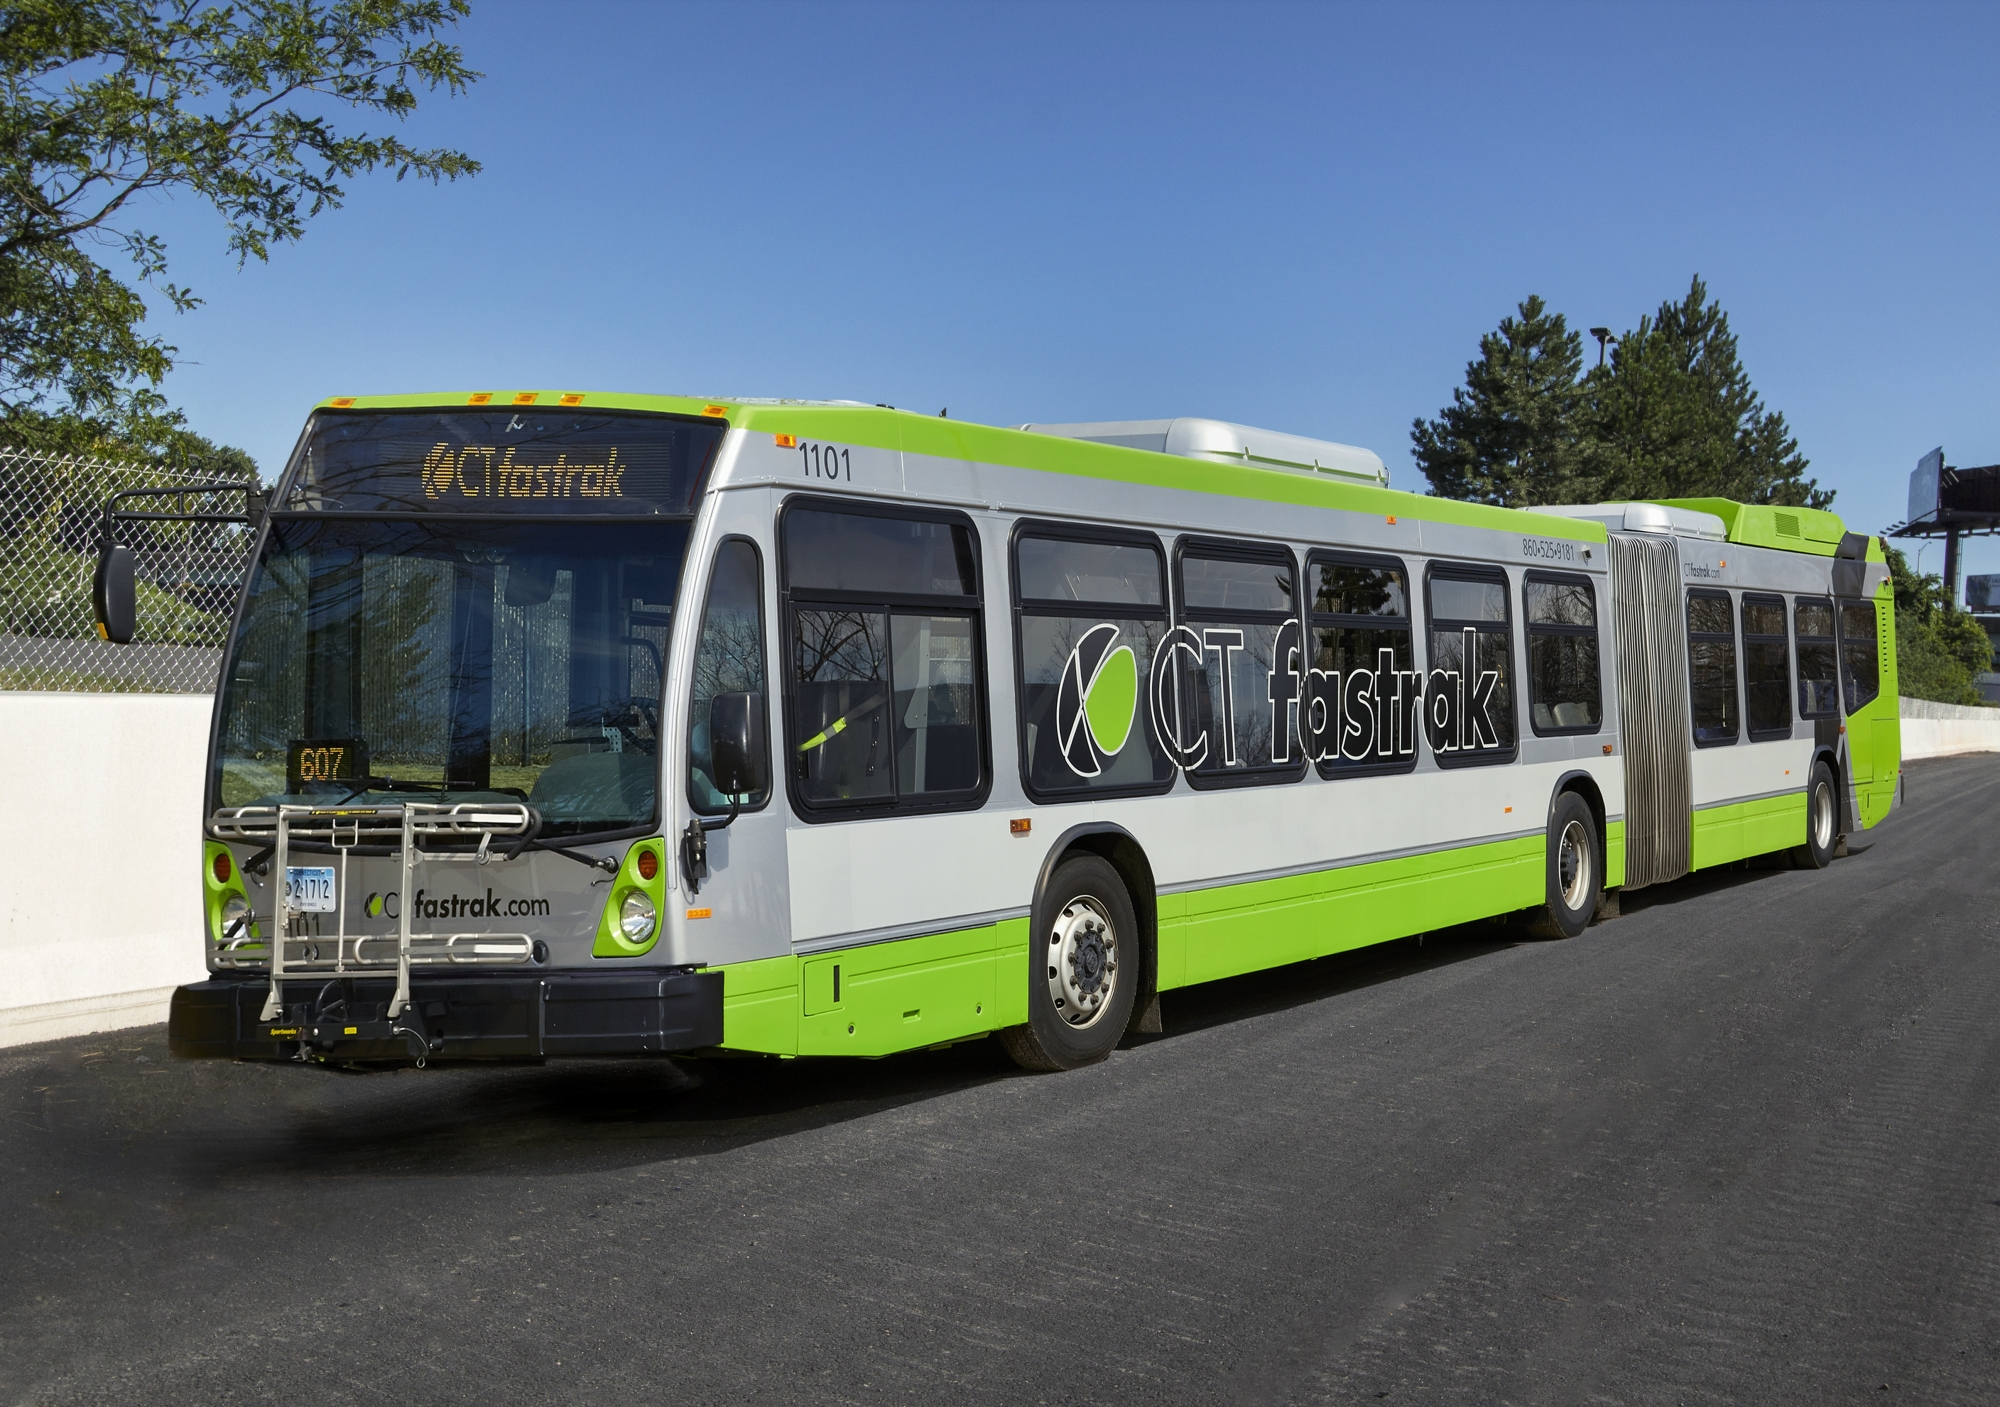 CT Fastrak opens for commuters, bus riders